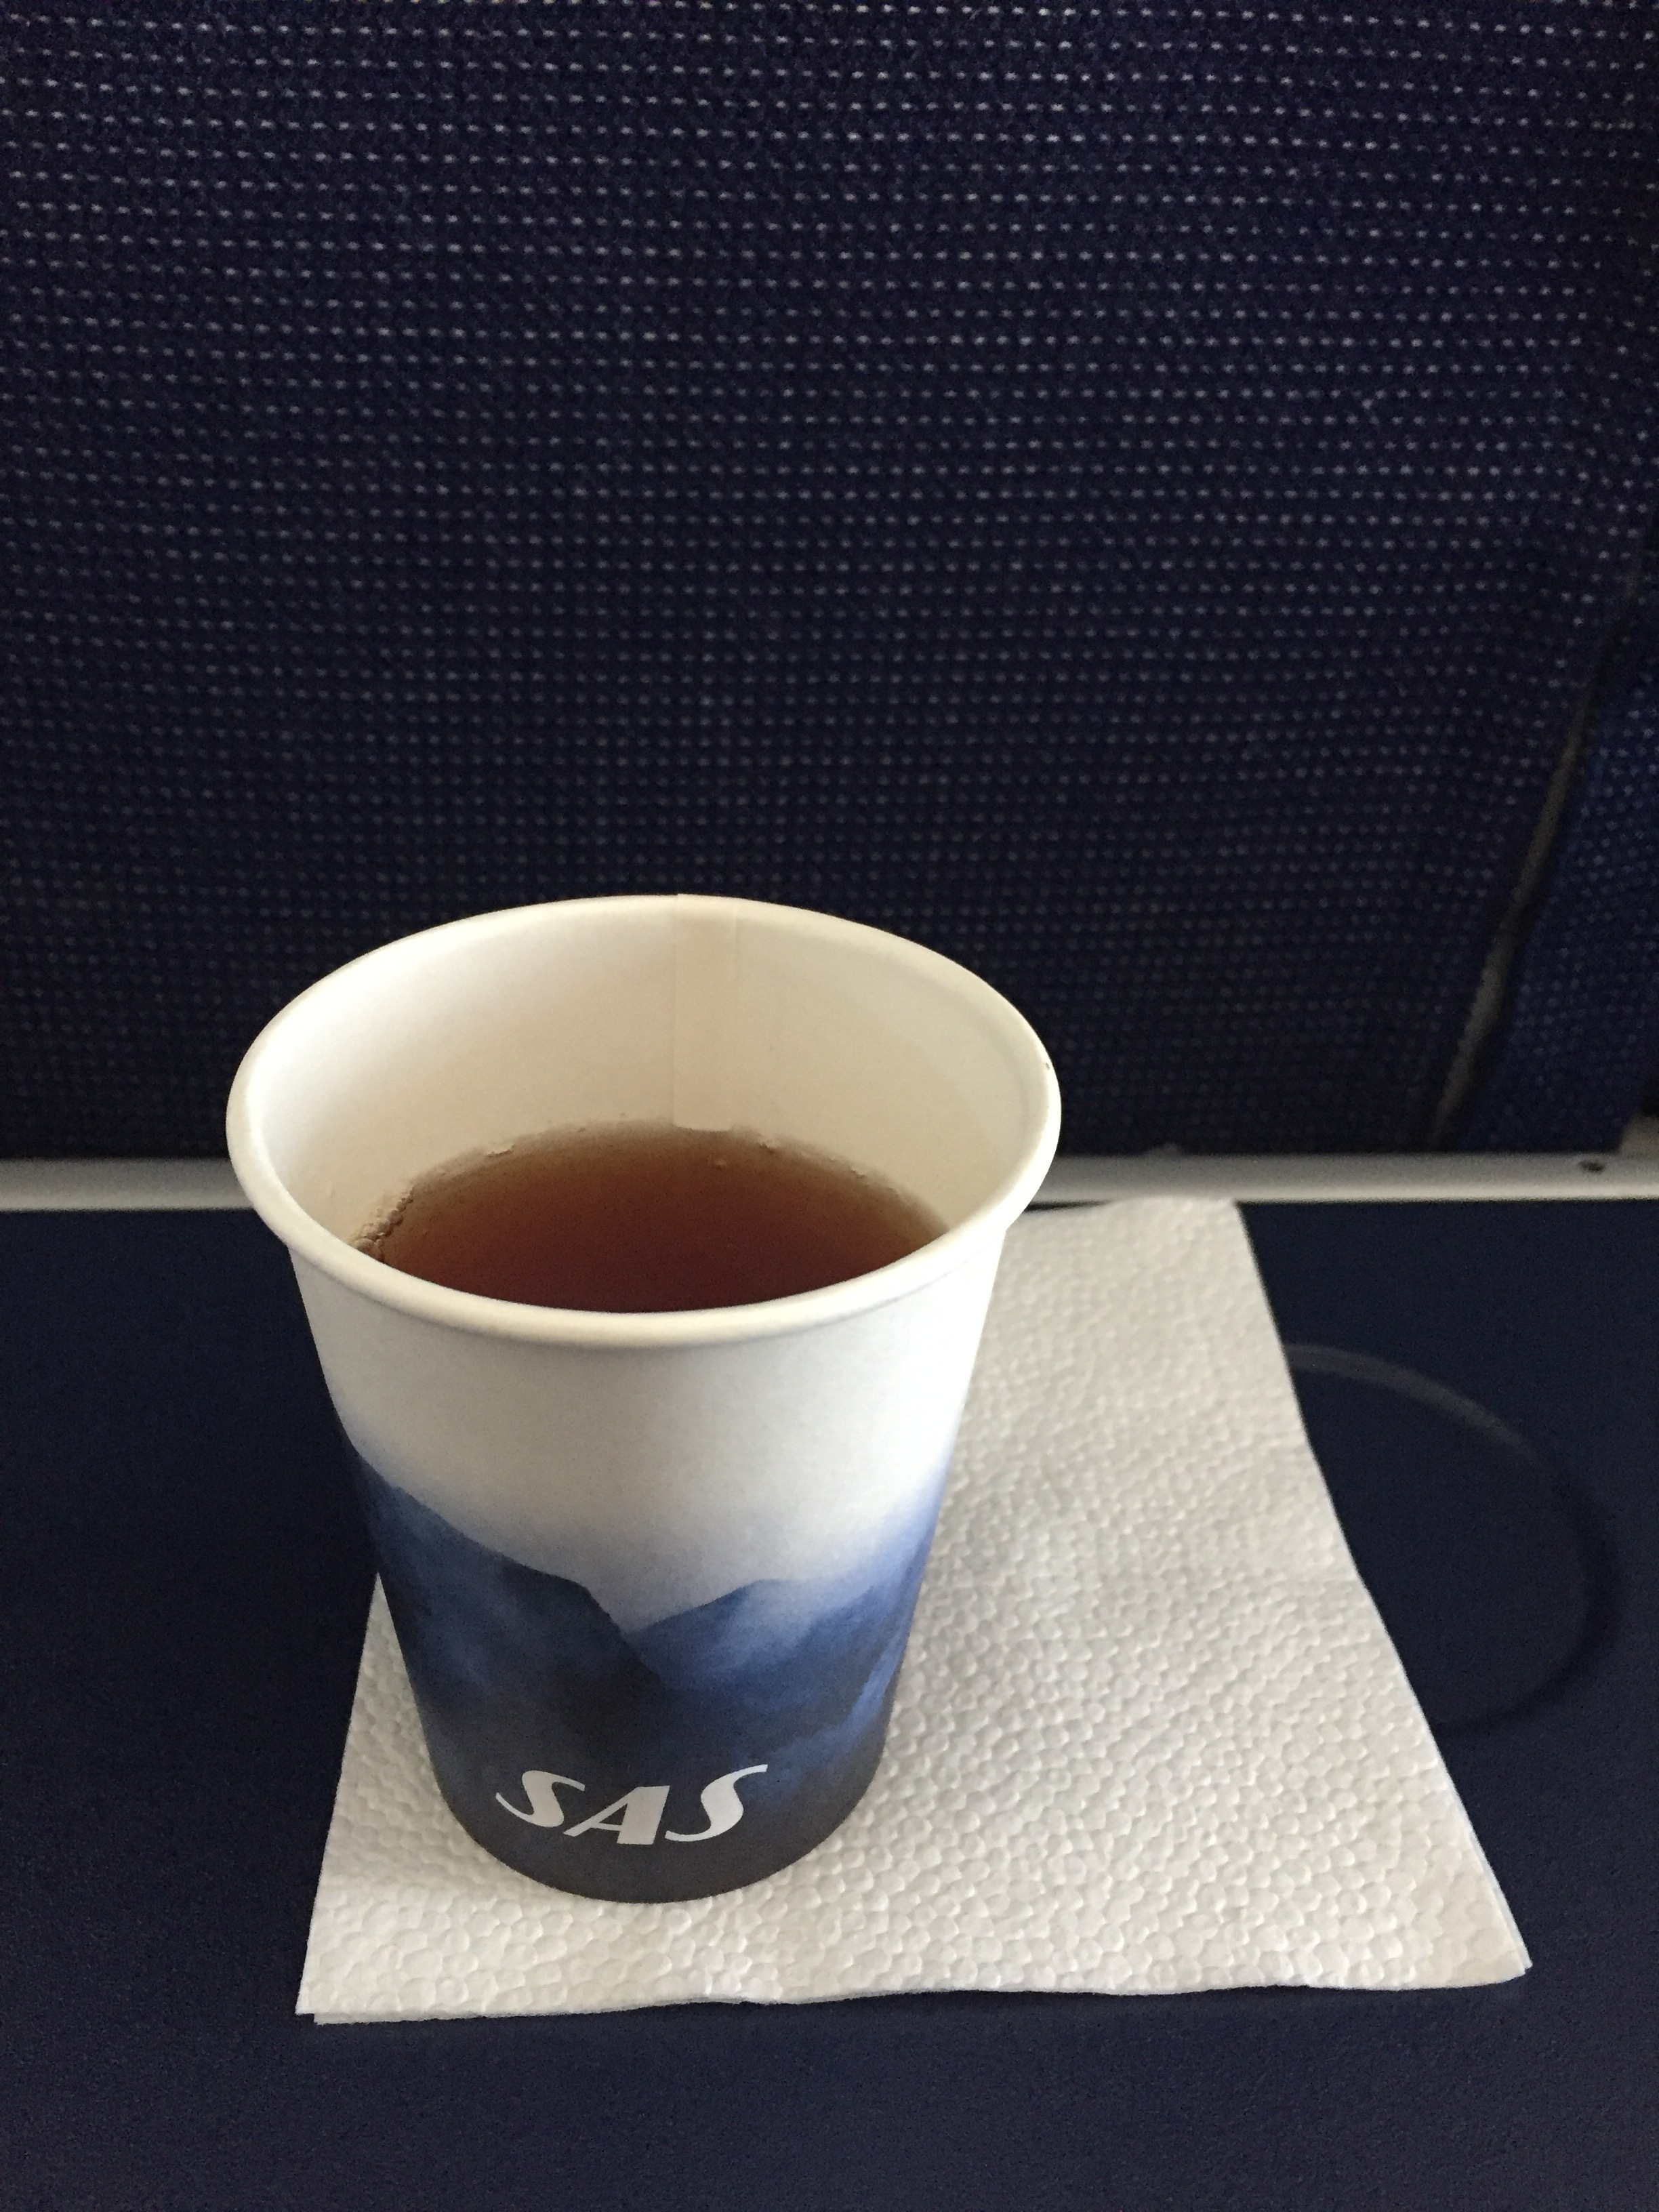 SAS inflight drinks.JPG